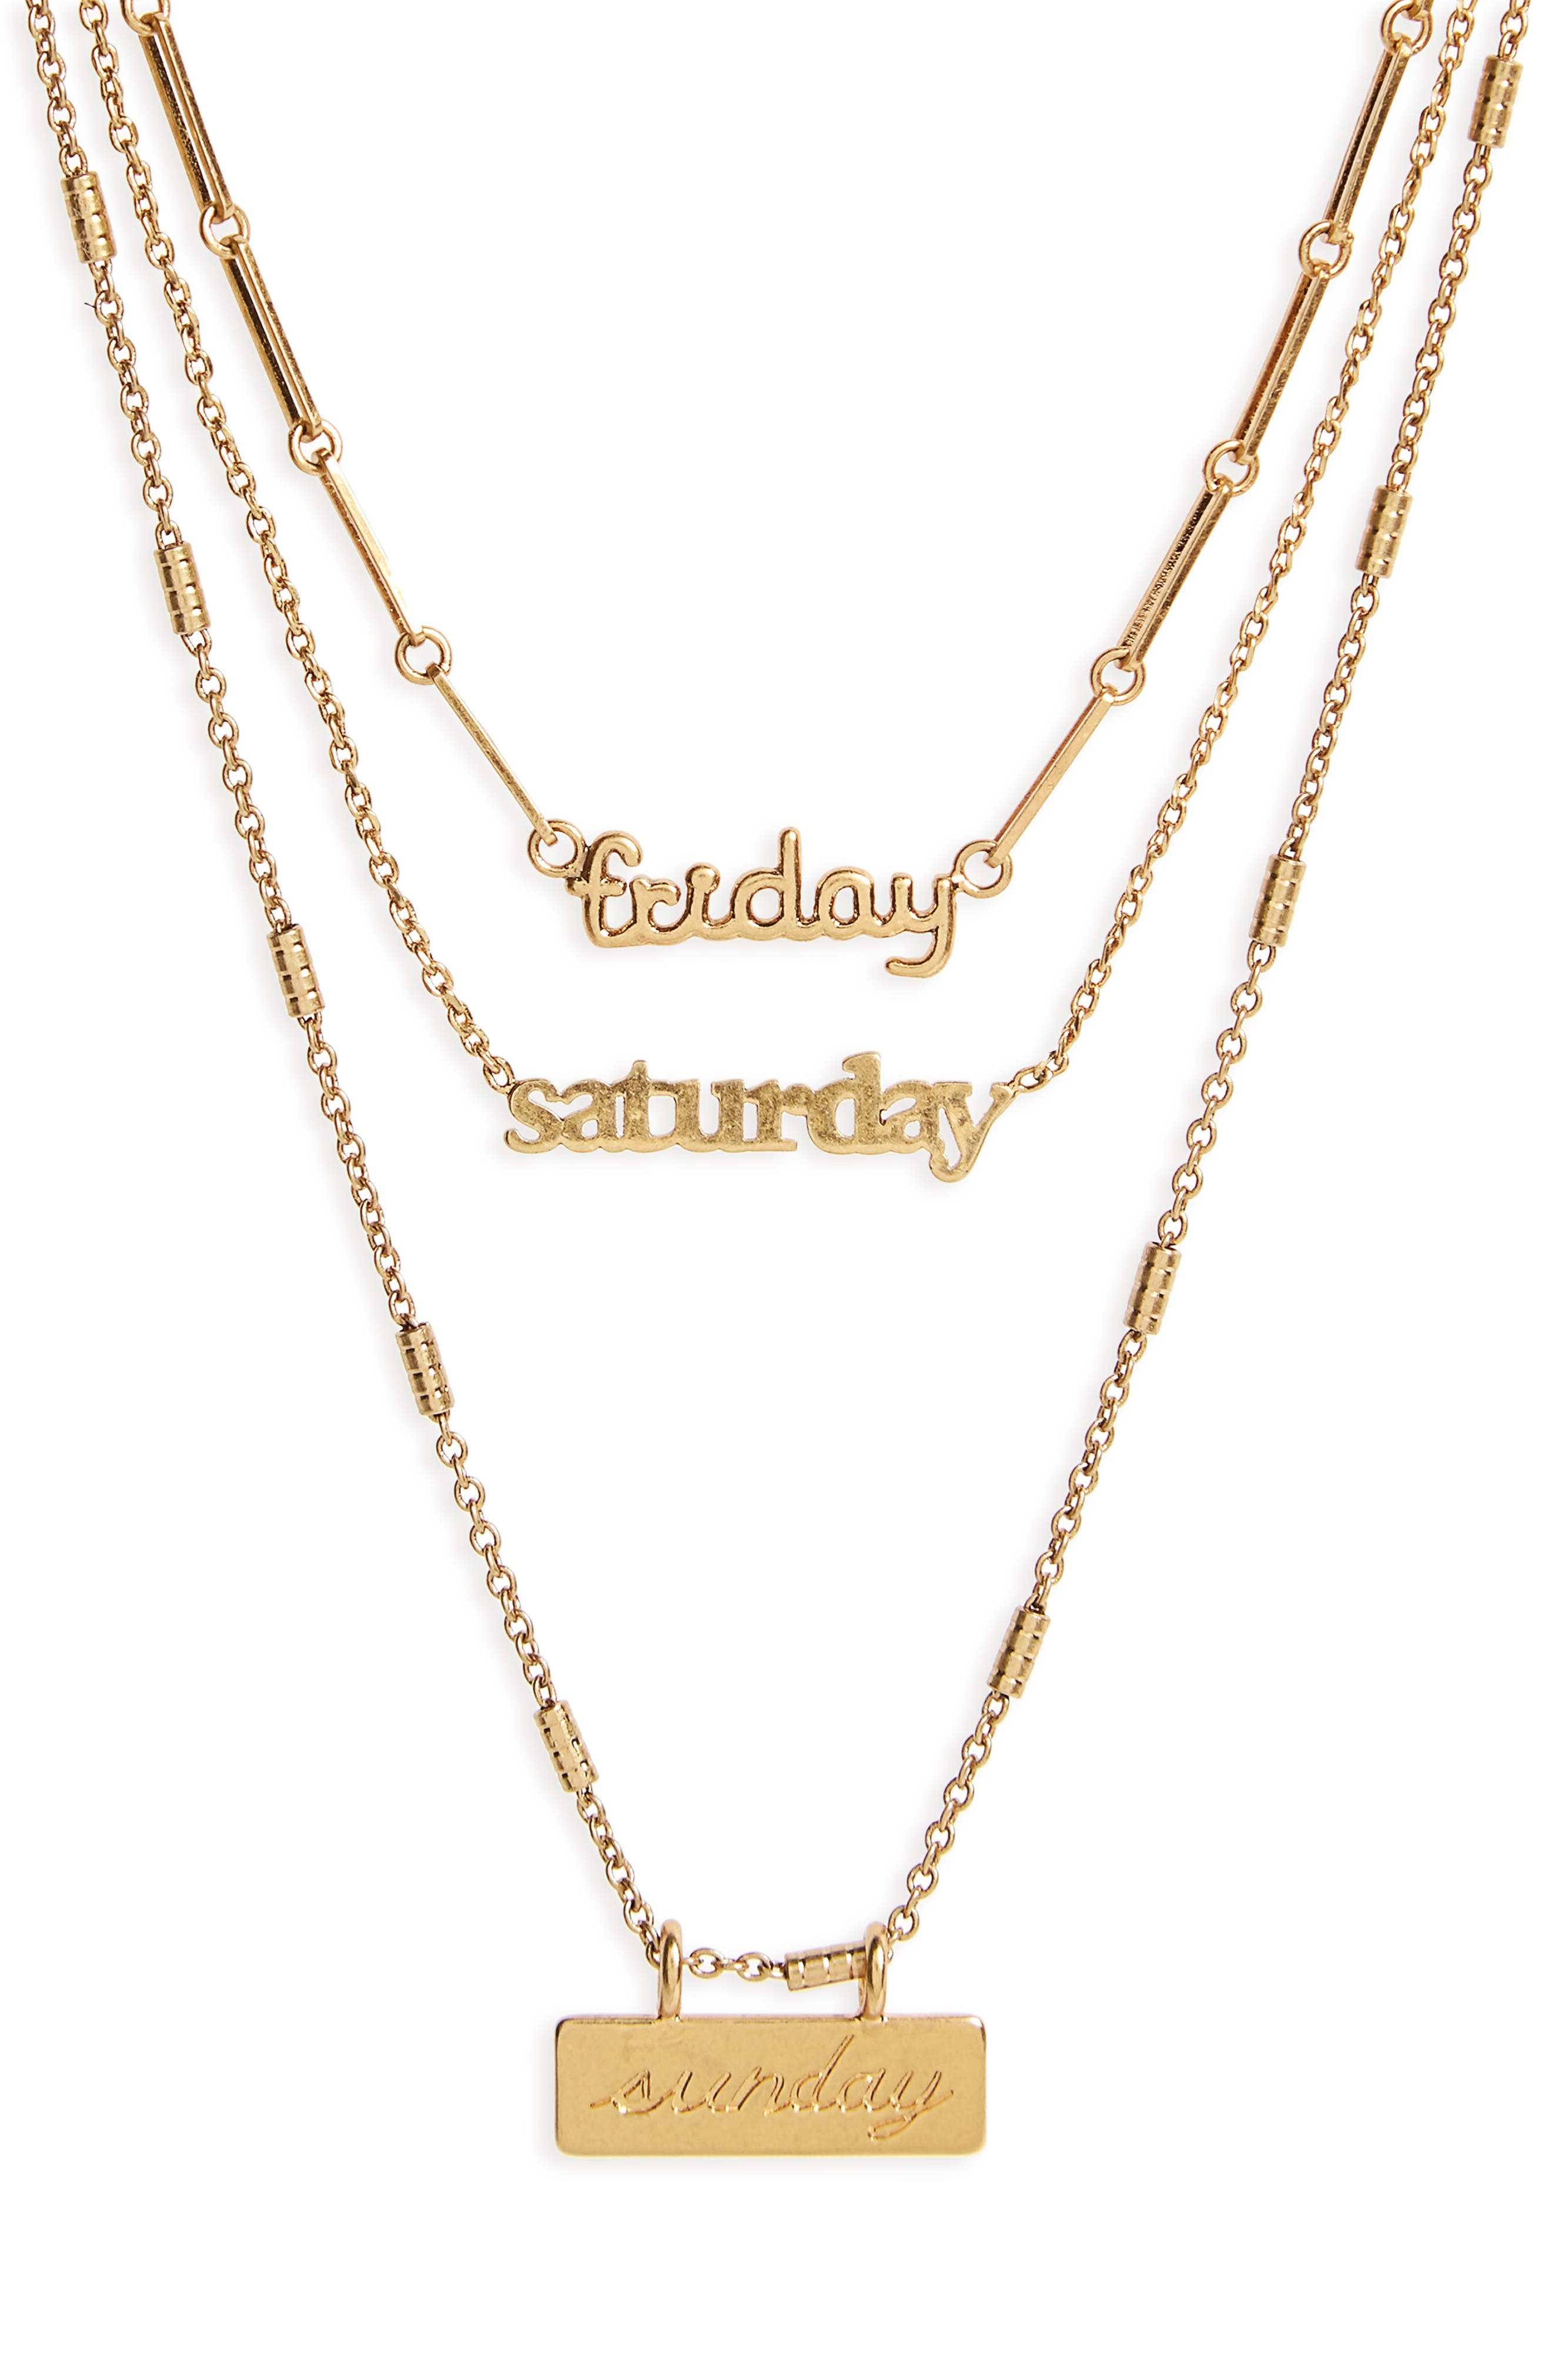 Friday Saturday Sunday Necklace Set,                         Main,                         color, 710